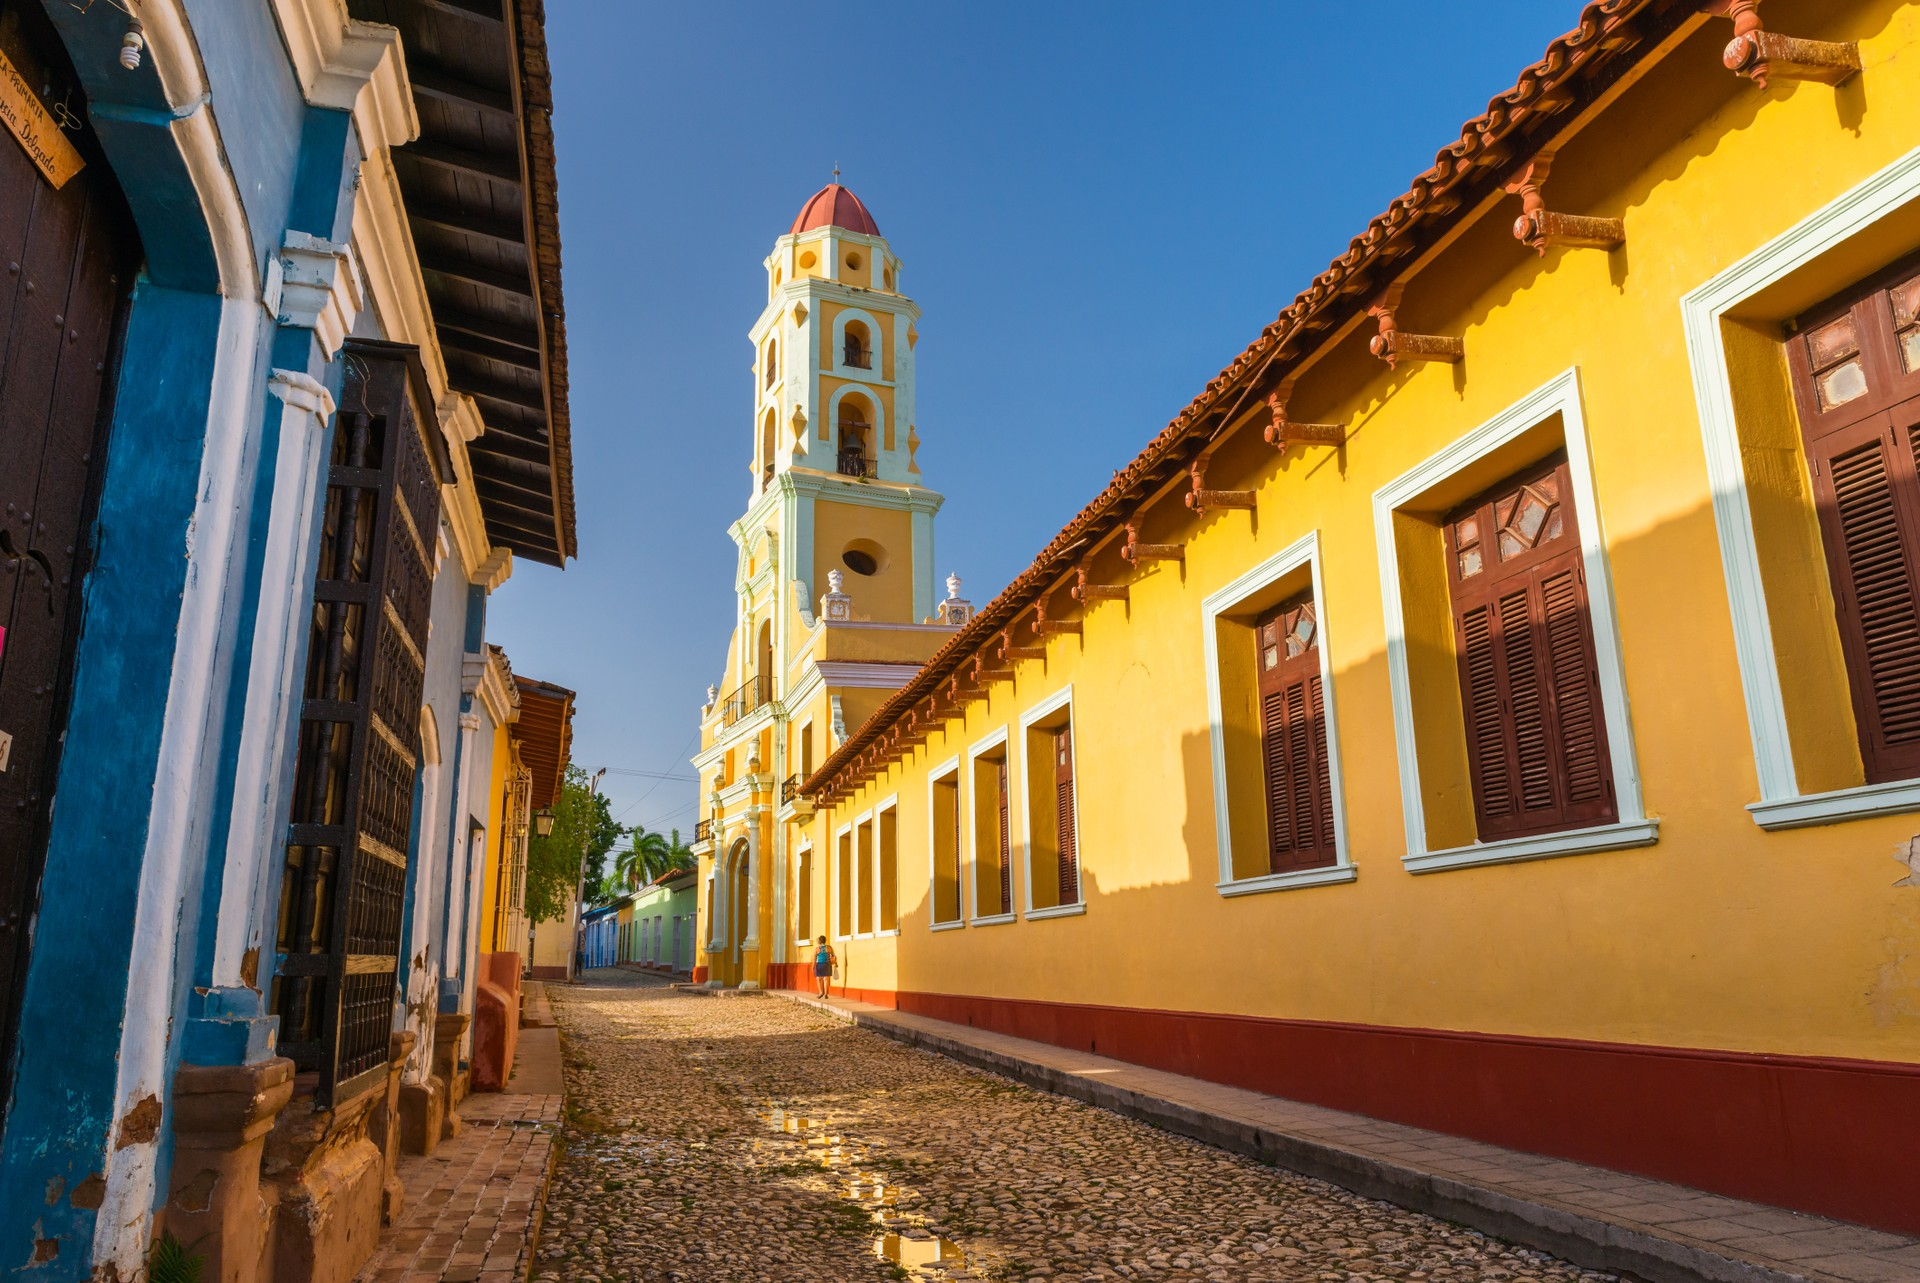 The pretty colonial buildings of Trinidad, Cuba